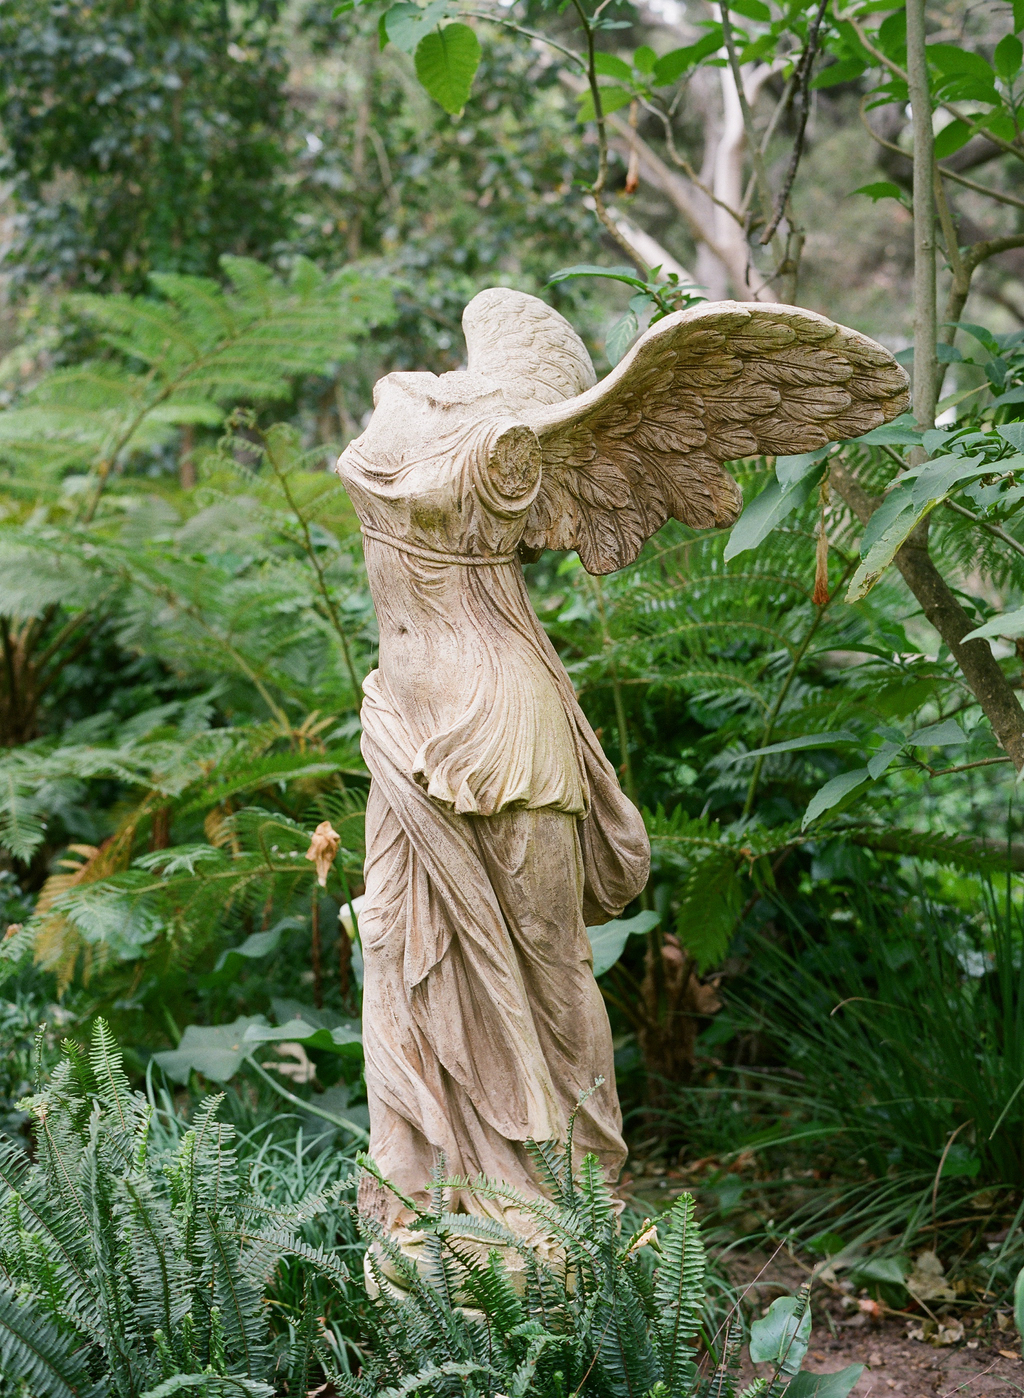 Styled-wedding-santa-barbara-chic-beaux-arts-photographie-italian-bohemian-wedding-venue-garden-statue-016.full